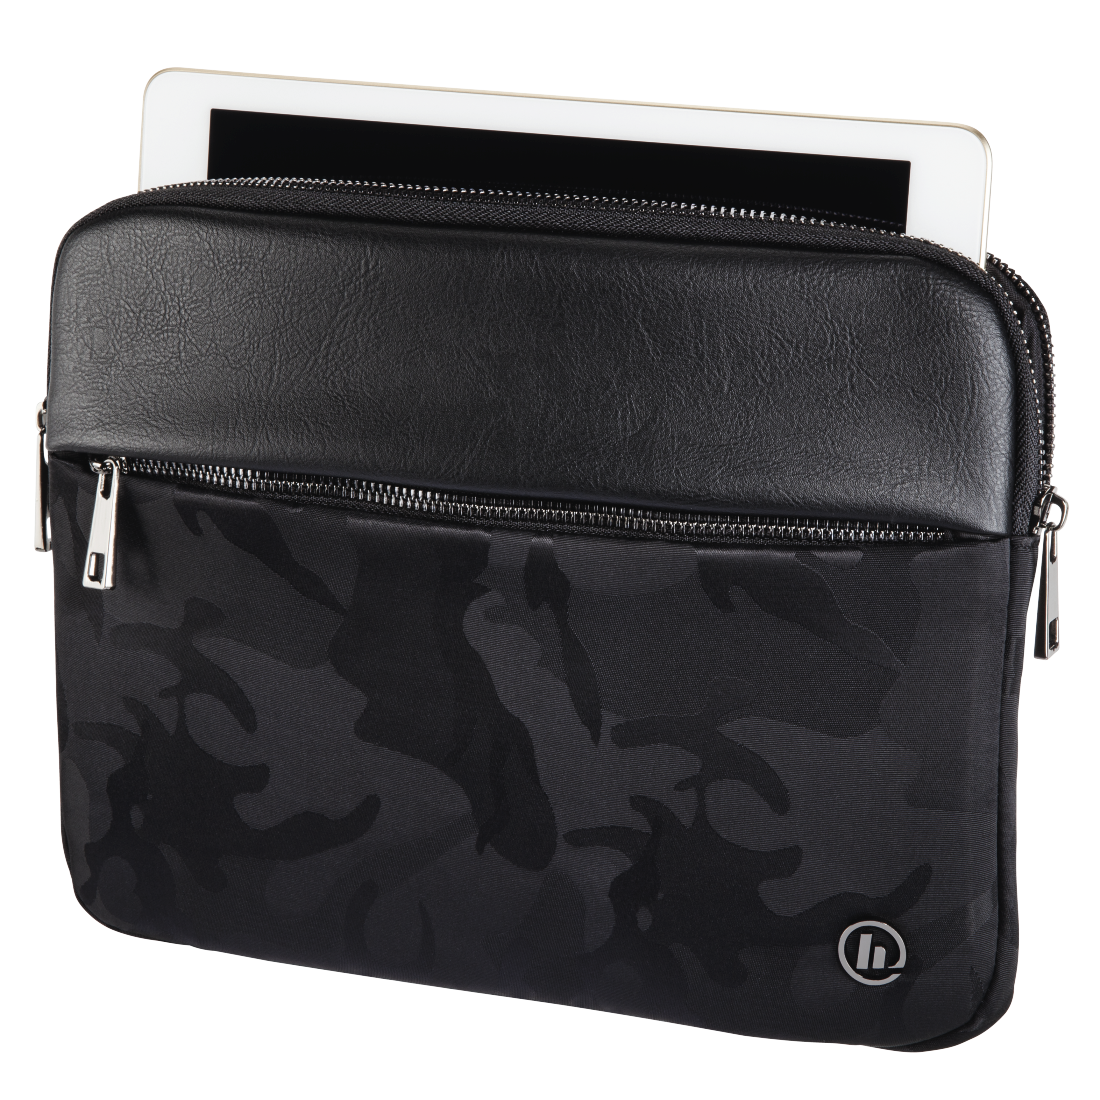 abx2 High-Res Image 2 - Hama, Mission Camo Tablet Sleeve, up to 25.6 cm (10.1), gun metal